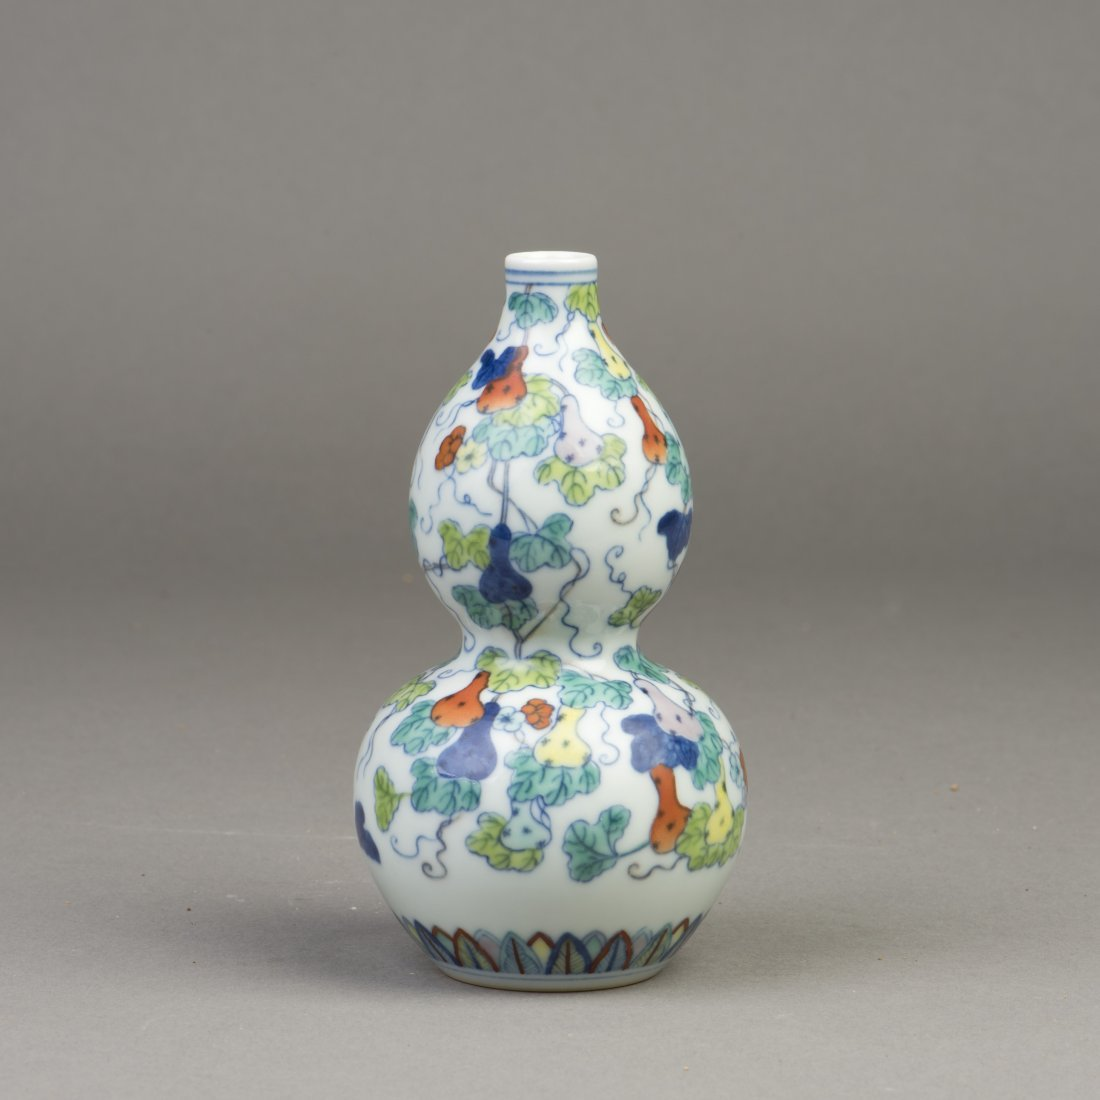 A CHINESE GOURD-SHAPED DOUCAI PORCELAIN VASE